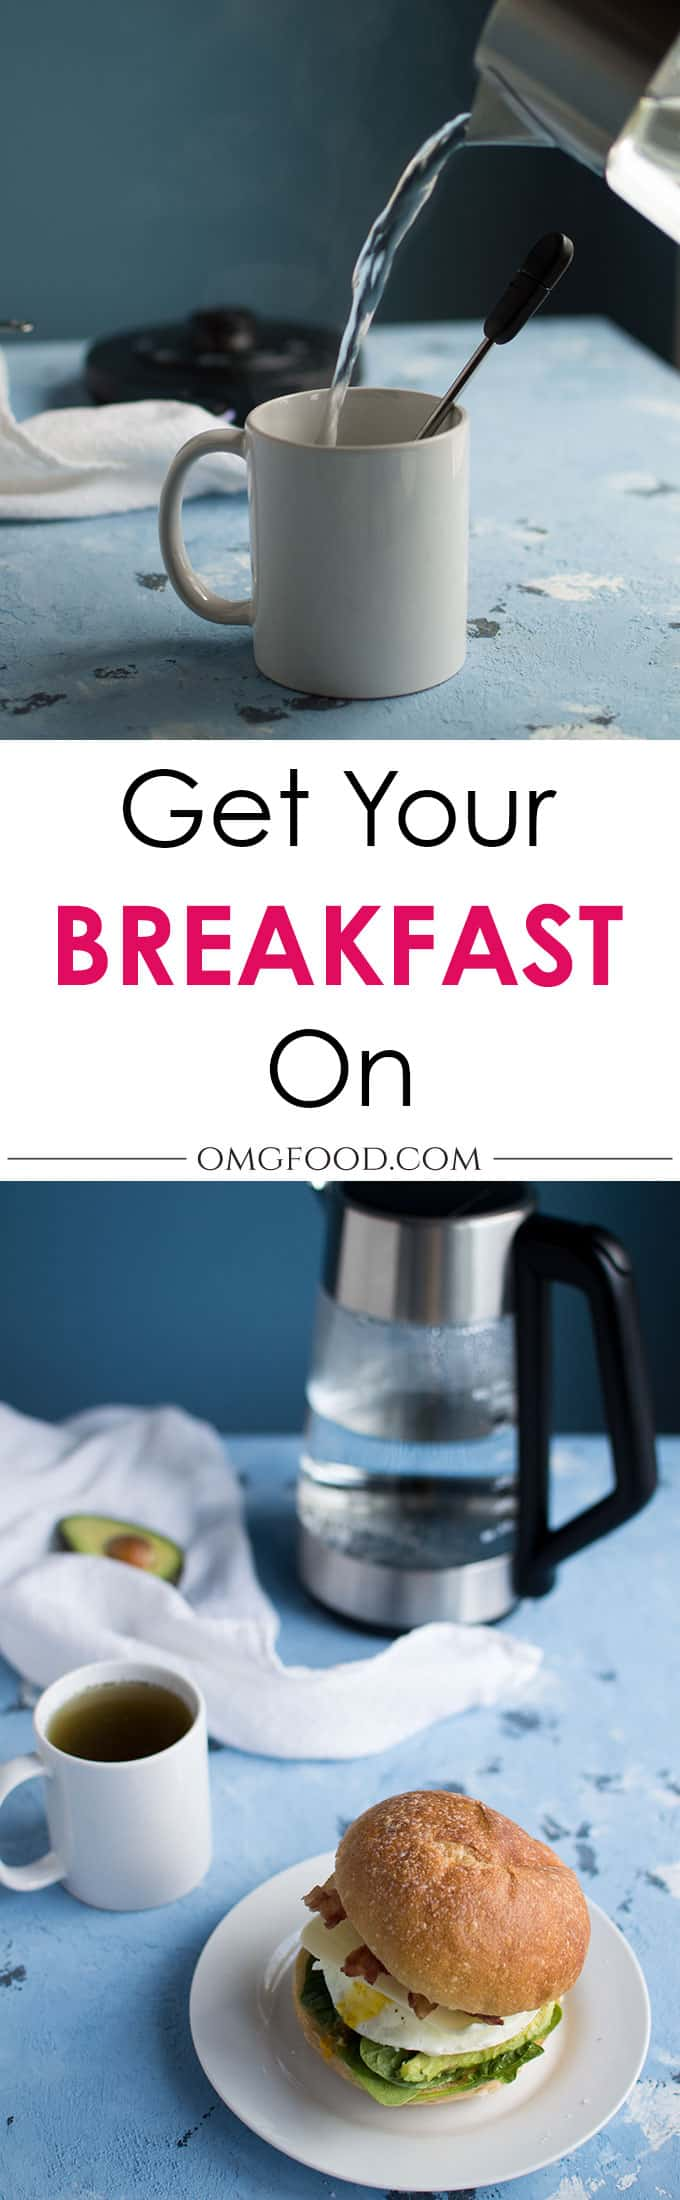 Get Your Breakfast On | omgfood.com